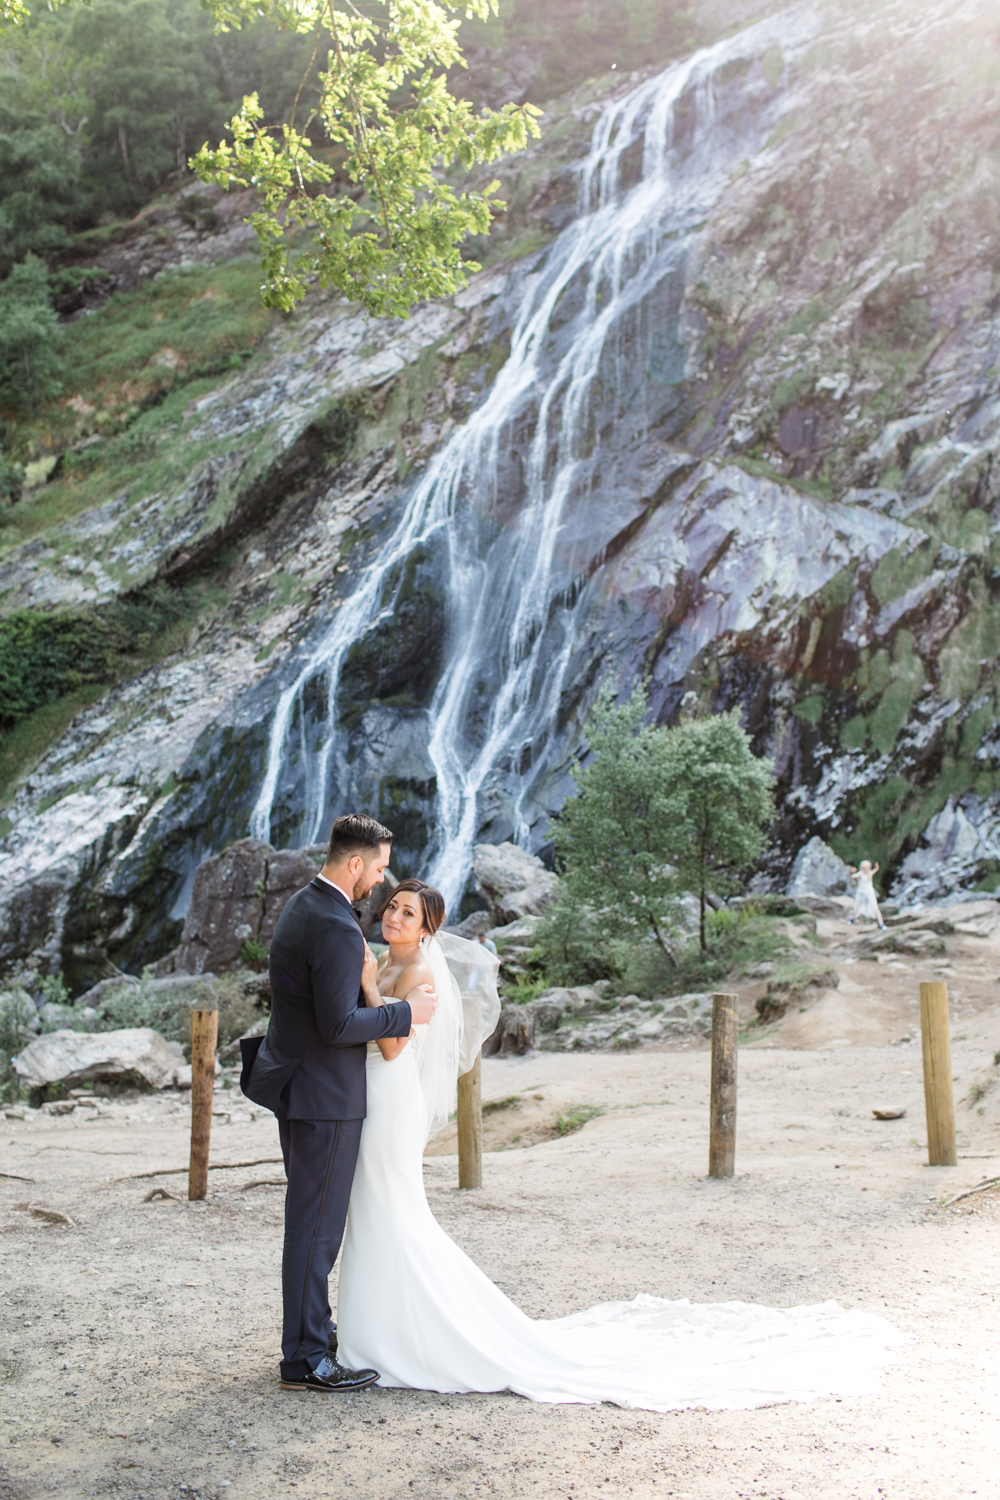 bride and groom looking up at each other with a big waterfall behind them they are located in powerscourt waterfall in wicklow, ireland